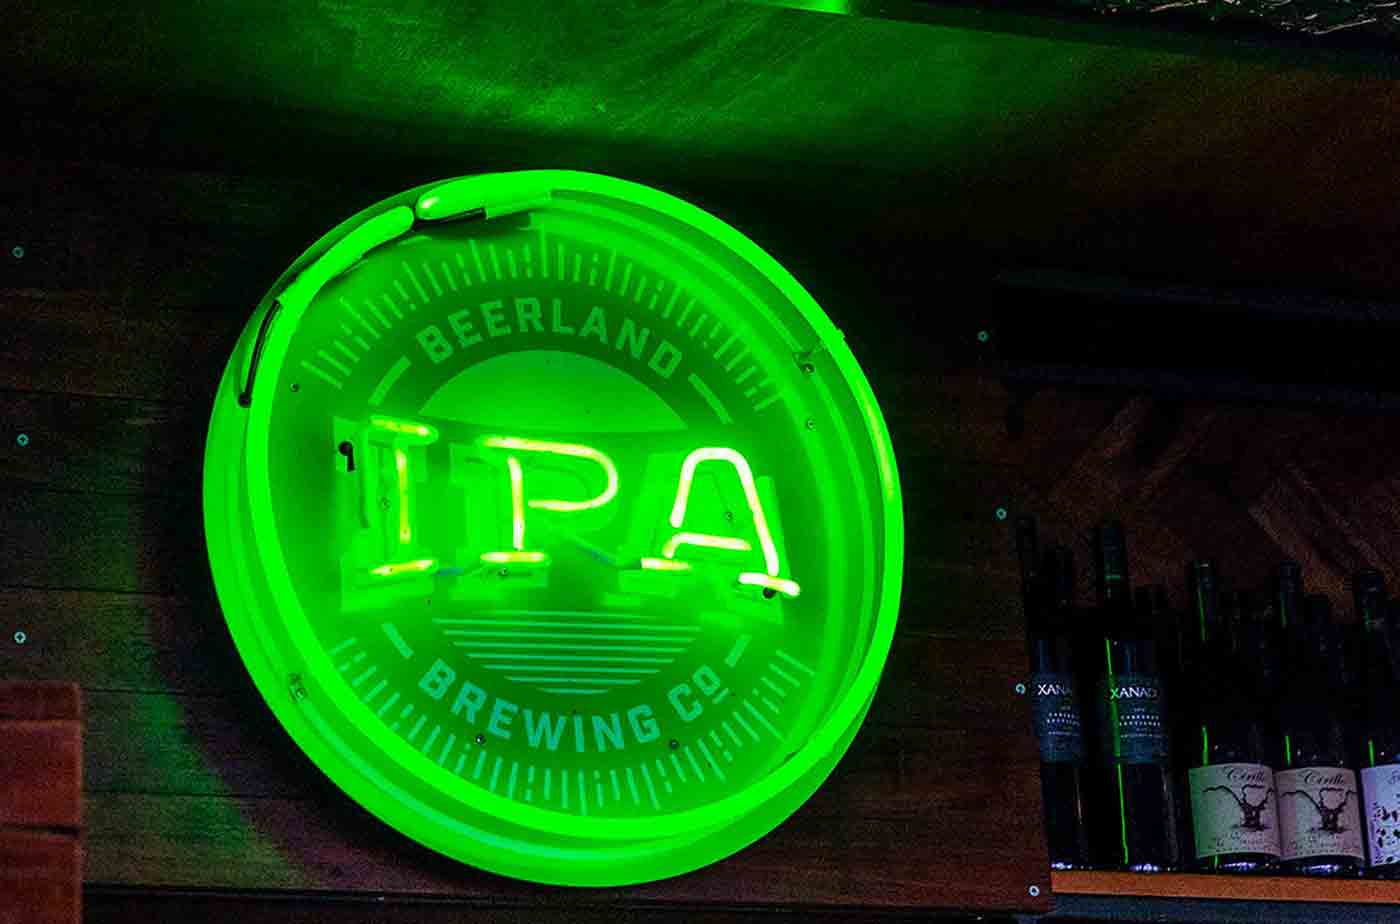 Northbridge Brewing Company Beerland IPA